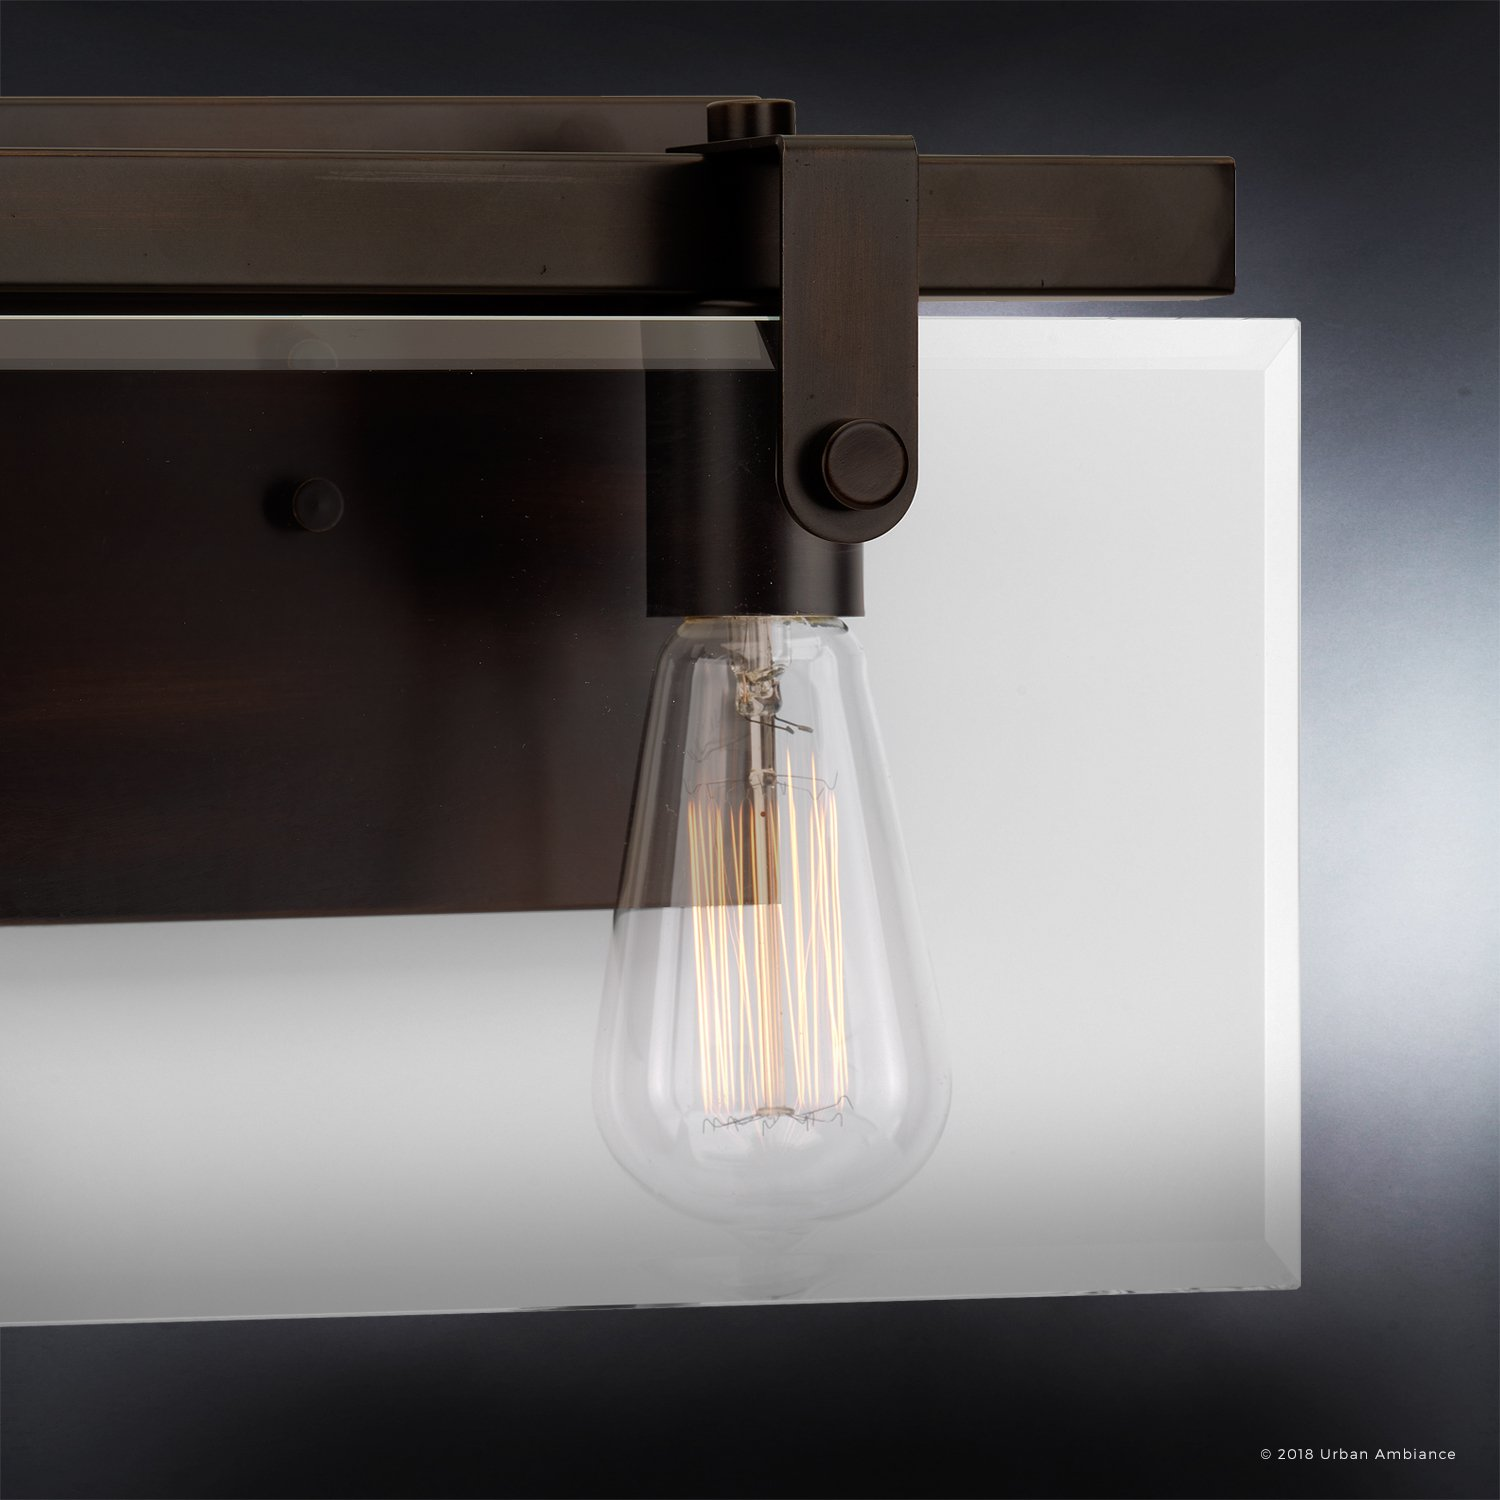 Luxury Modern Farmhouse Bathroom Vanity Light, Medium Size: 8.38'' H x 14.875'' W, with Industrial Chic Style Elements, Olde Bronze Finish, UHP2452 from The Bristol Collection by Urban Ambiance by Urban Ambiance (Image #4)